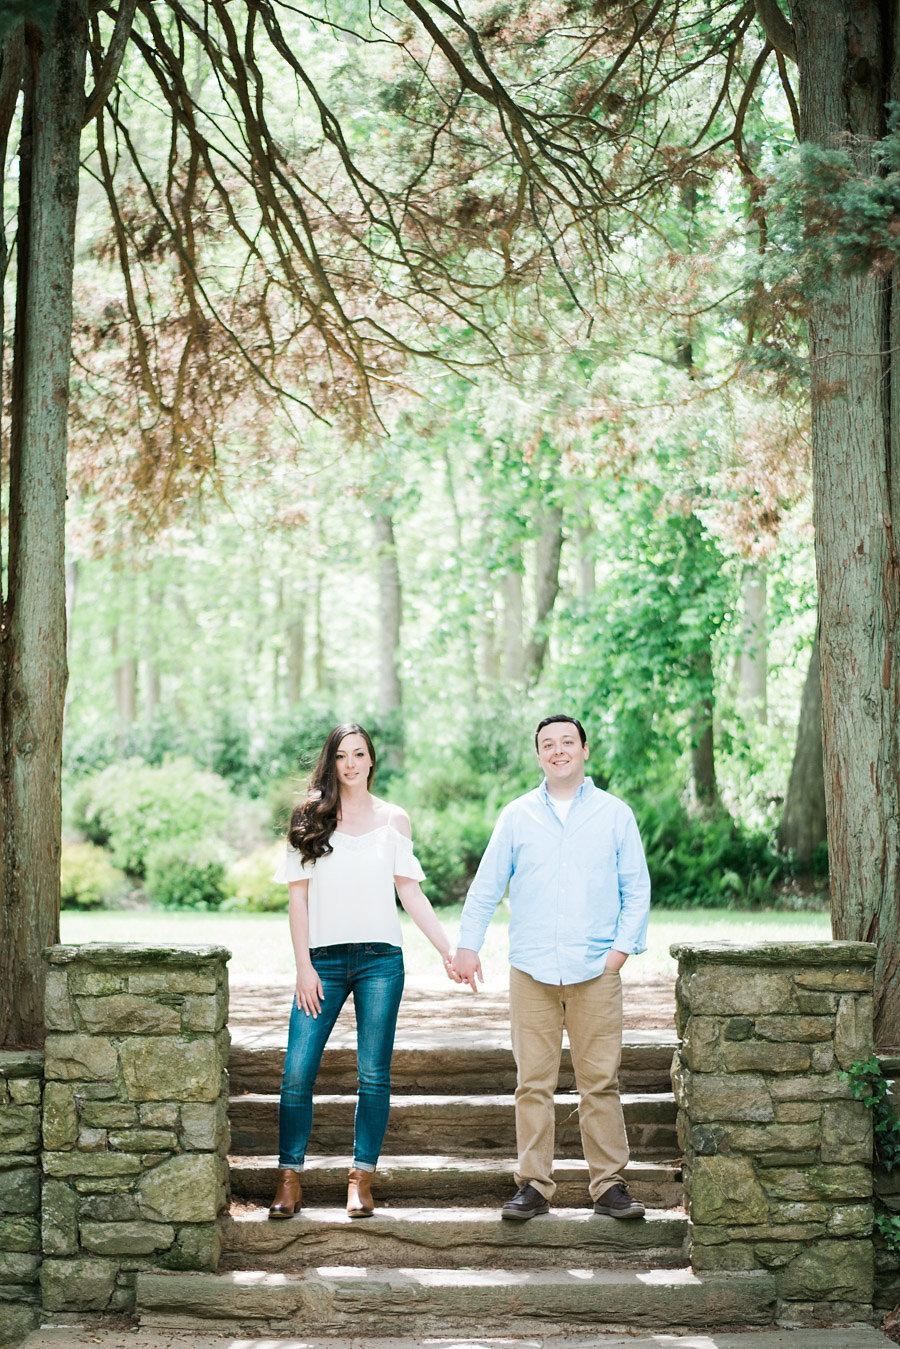 emcee_studio_photographie_engagement_photography_bride_groom_emily_jack_march_2016-27